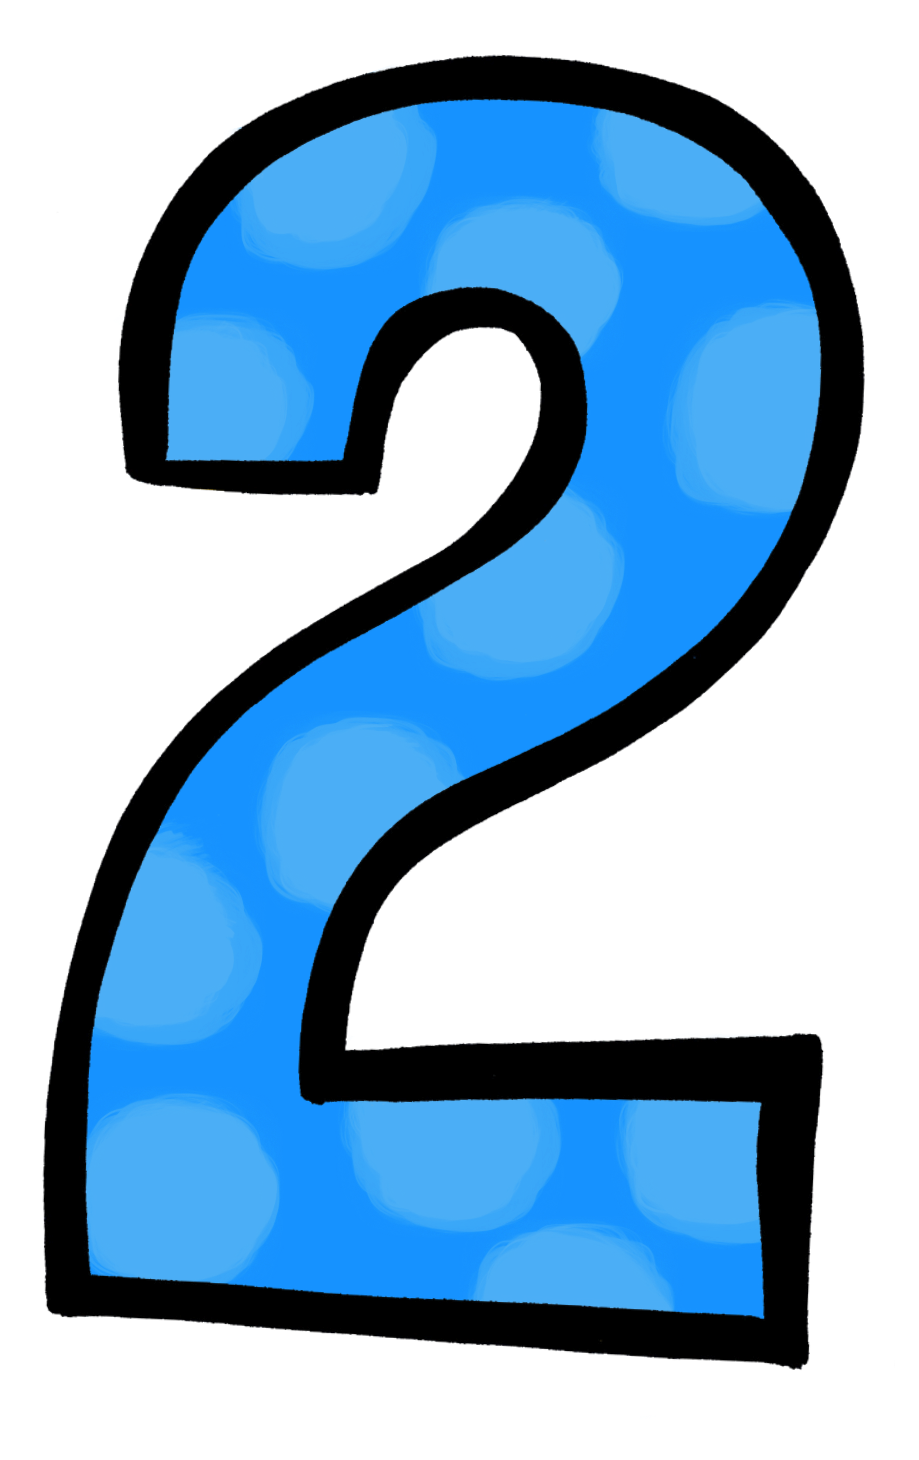 Number group free birthday. 2 clipart numeral